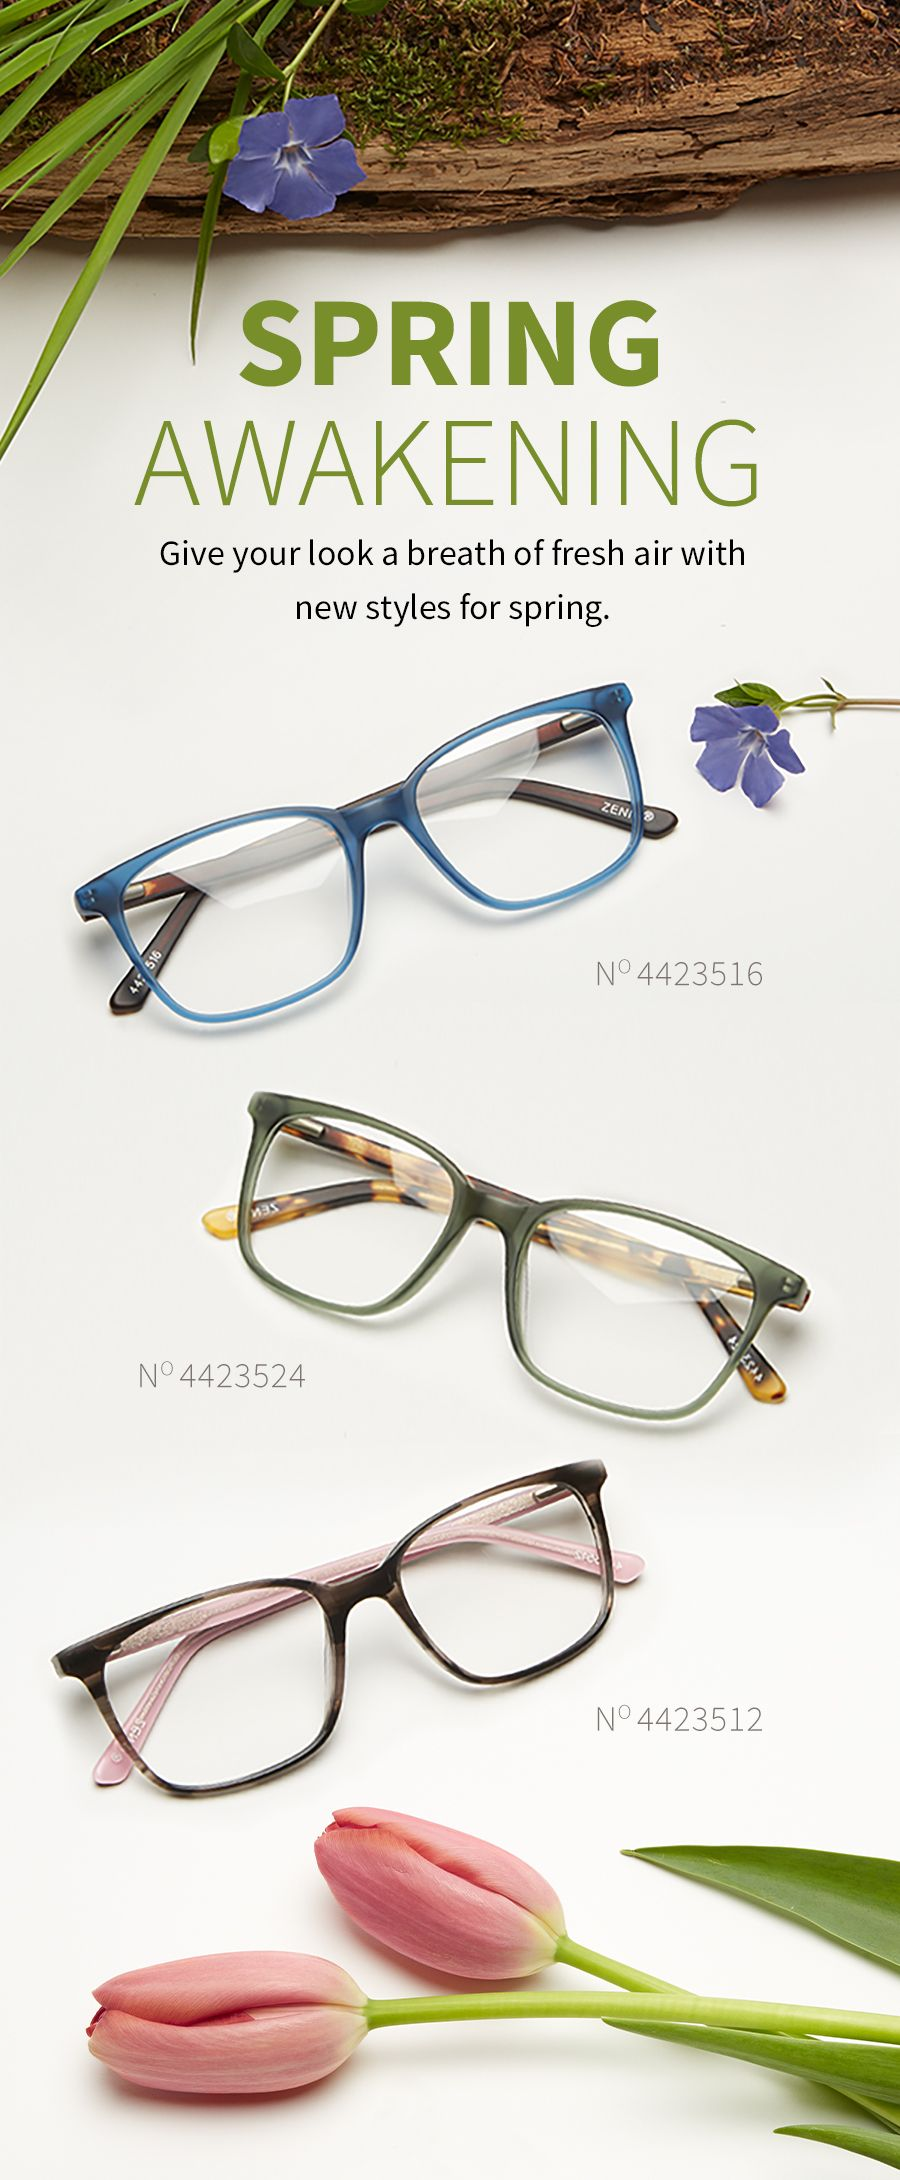 Light on the face, heavy on style. Introducing our new thin acetate ...